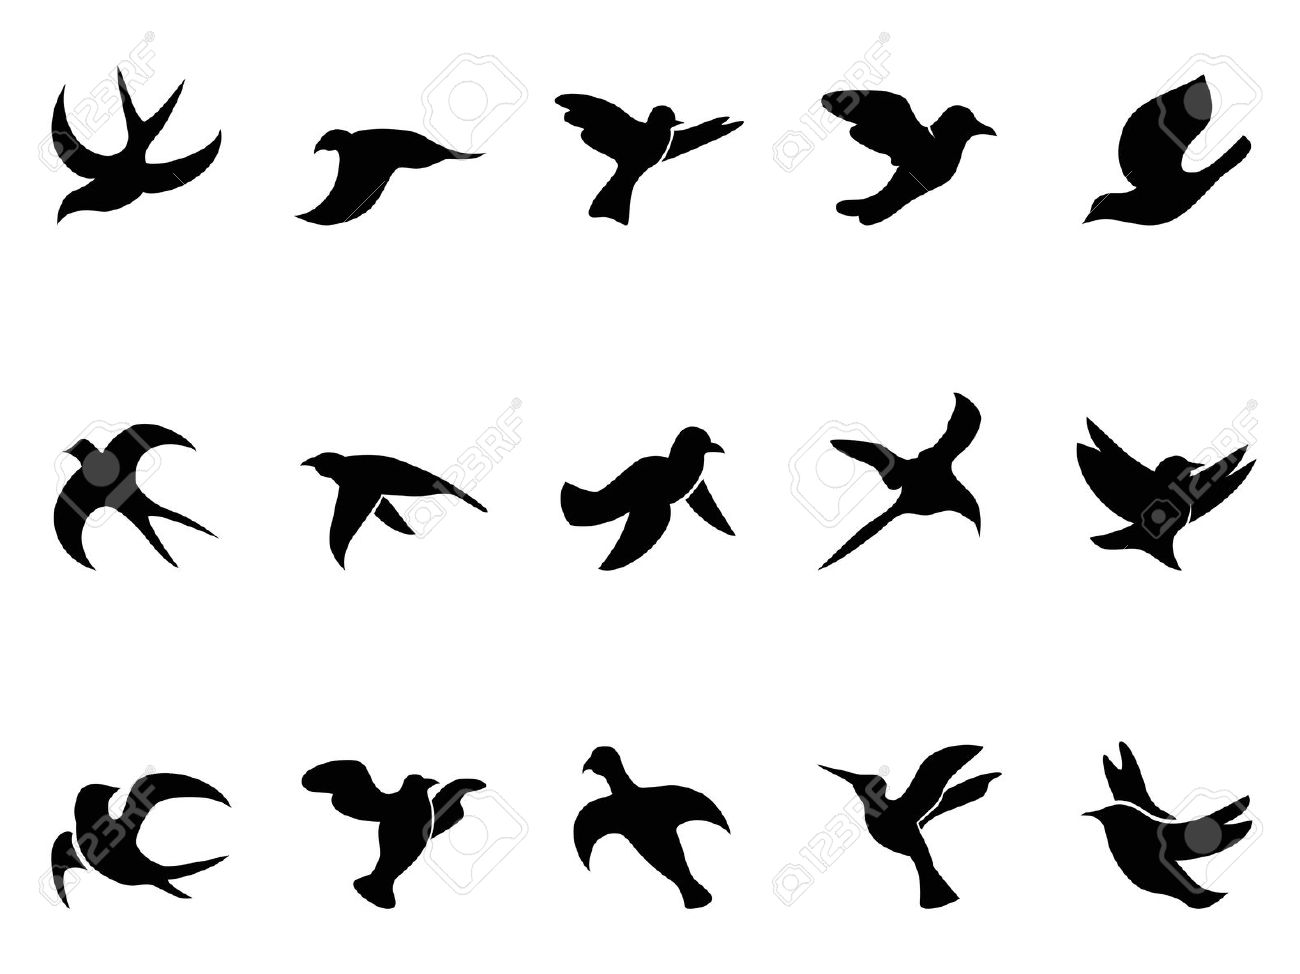 Sparrow silhouette at getdrawings. Bird clip art easy clipart freeuse